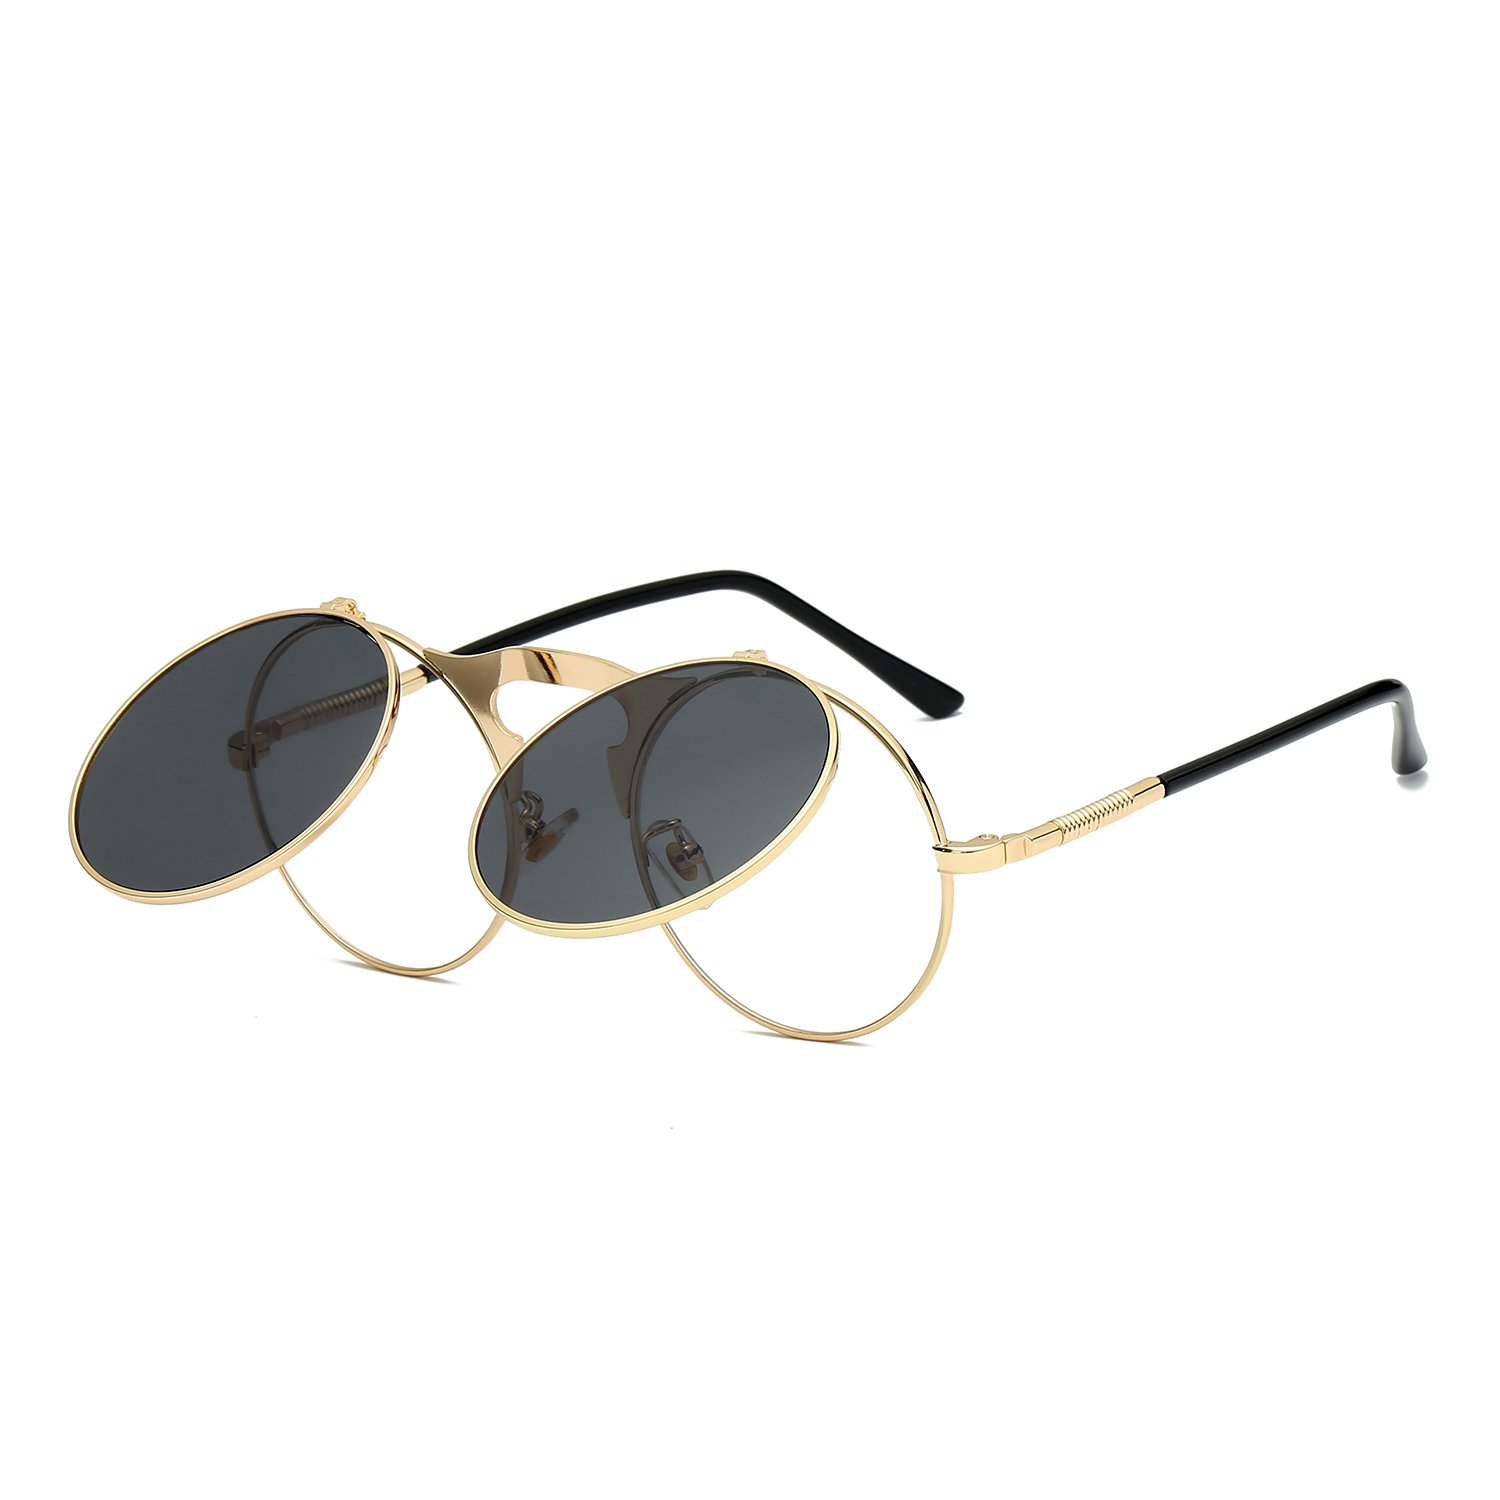 VeBrellen Retro Men Glasses Round Flip-Up Steampunk Sunglasses Clamshell Metal Frame Sunglasses (Gold Frame With Gray Lens, 46)